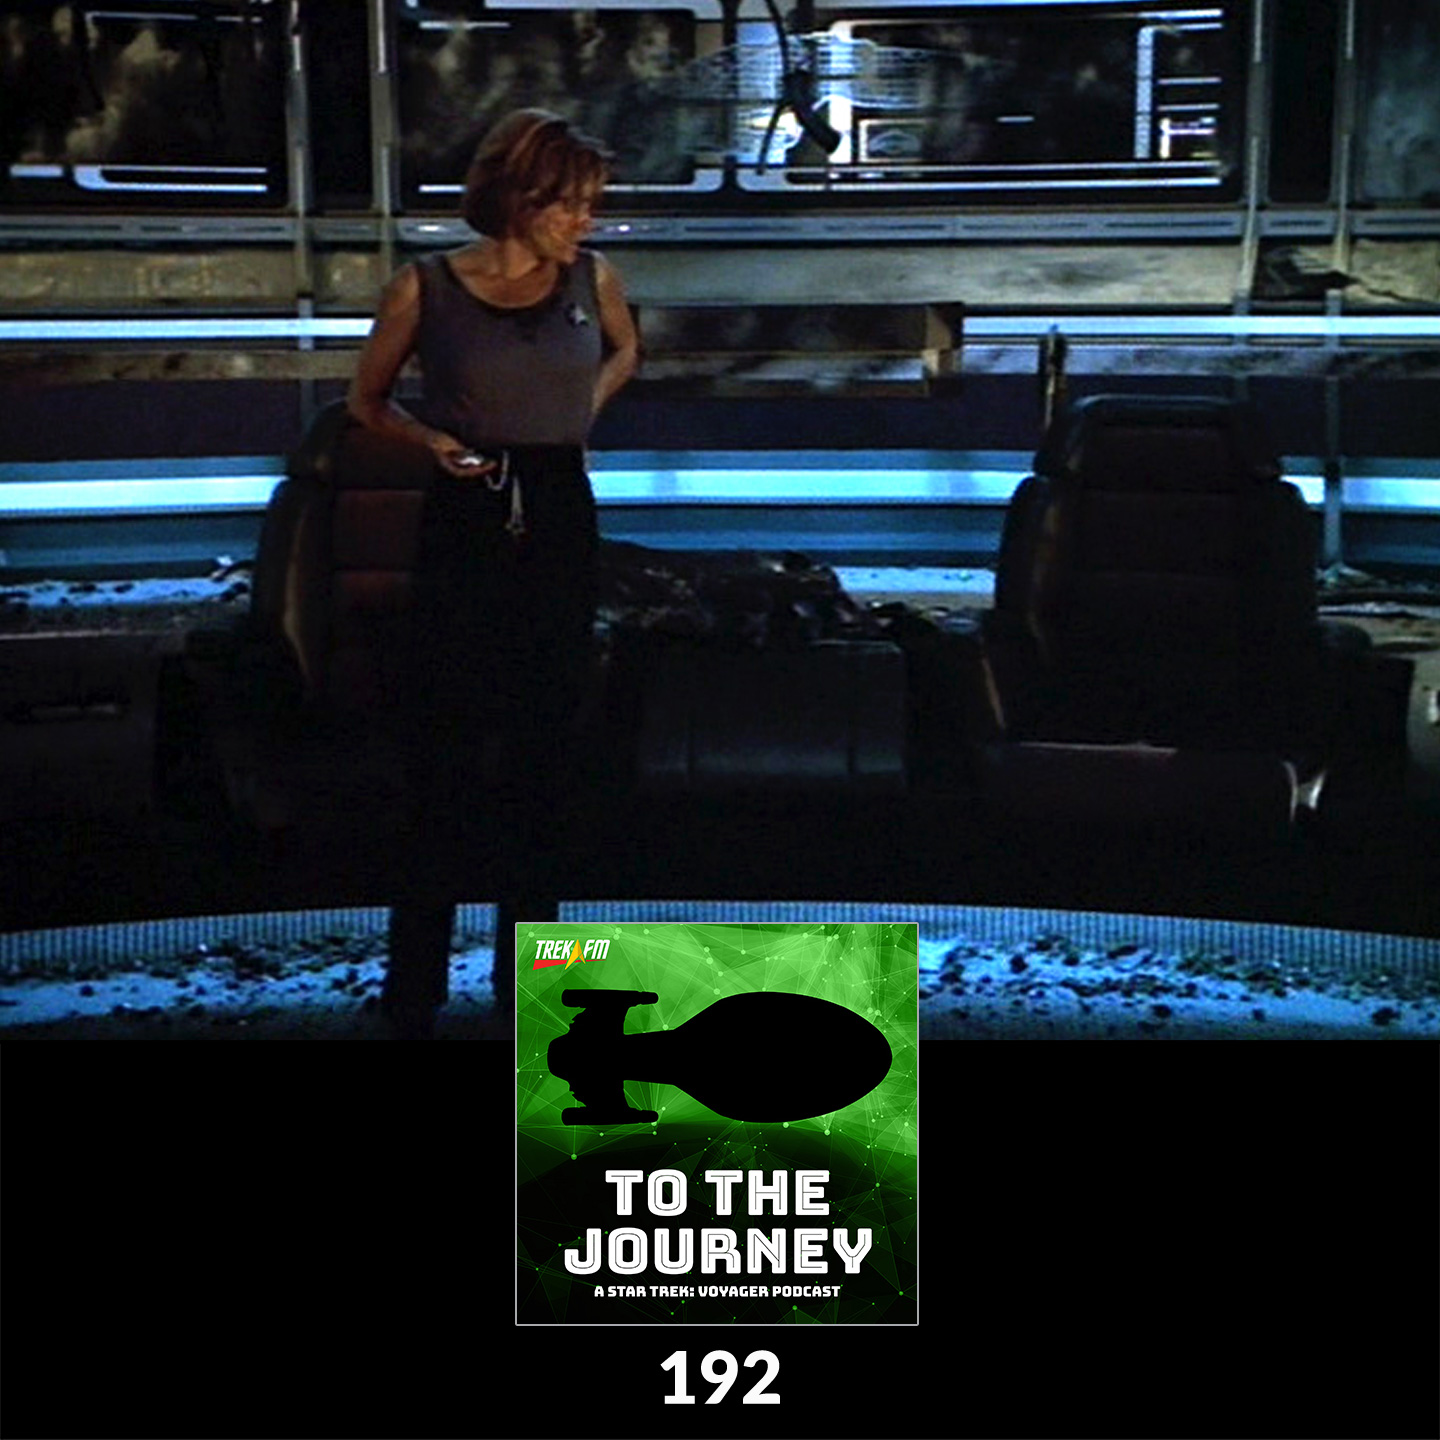 To The Journey 192: But It Never Really Happened - Voyager Continuity.